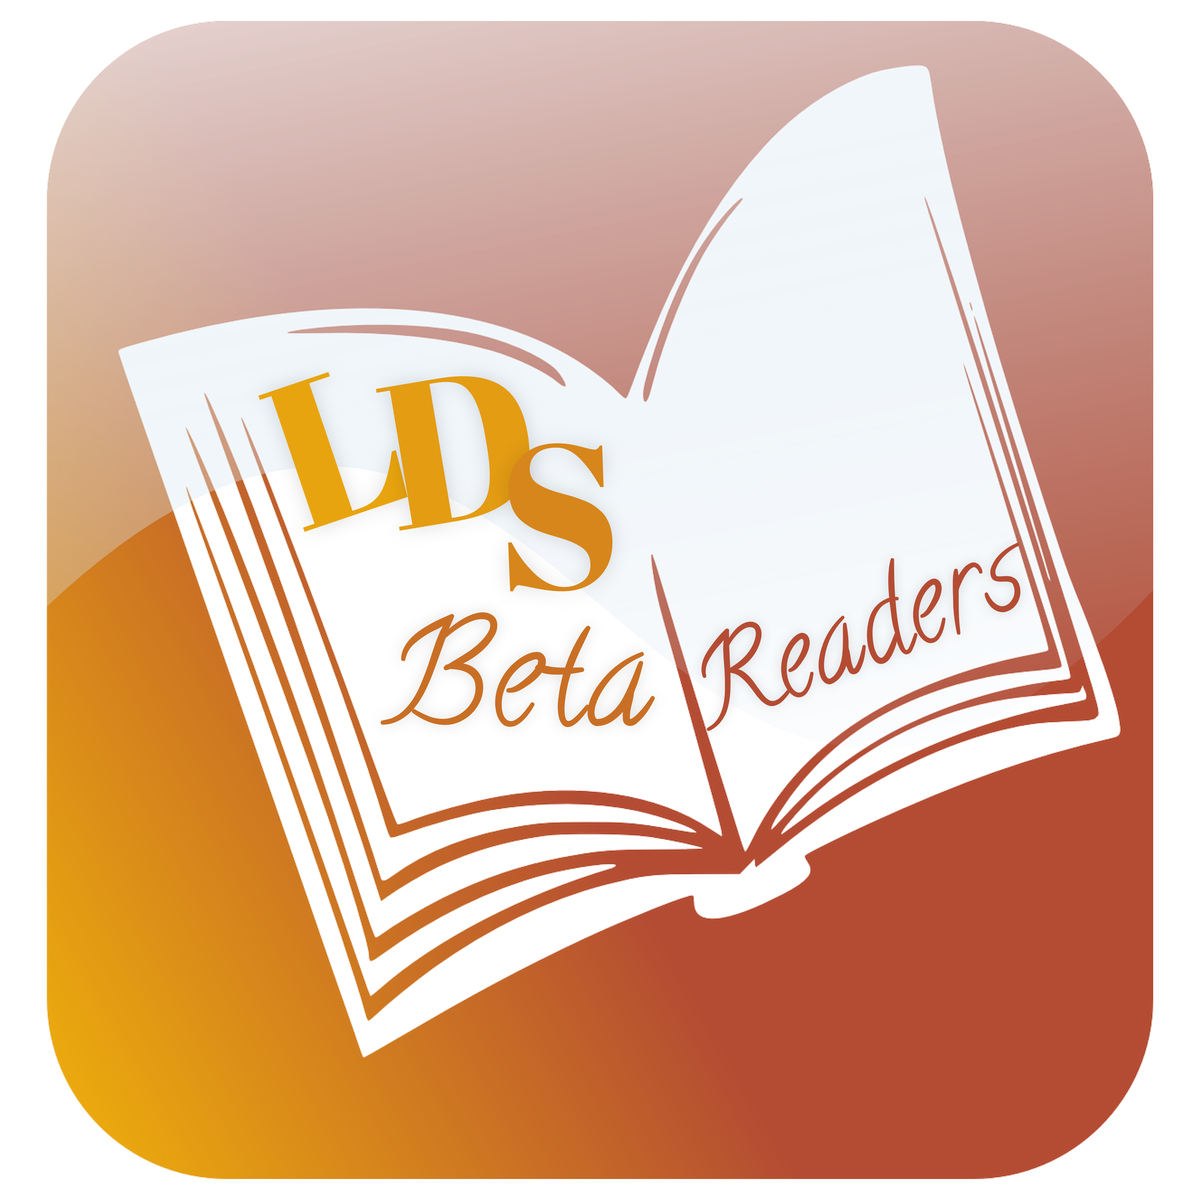 Welcome to the LDS Beta Readers' Blog!